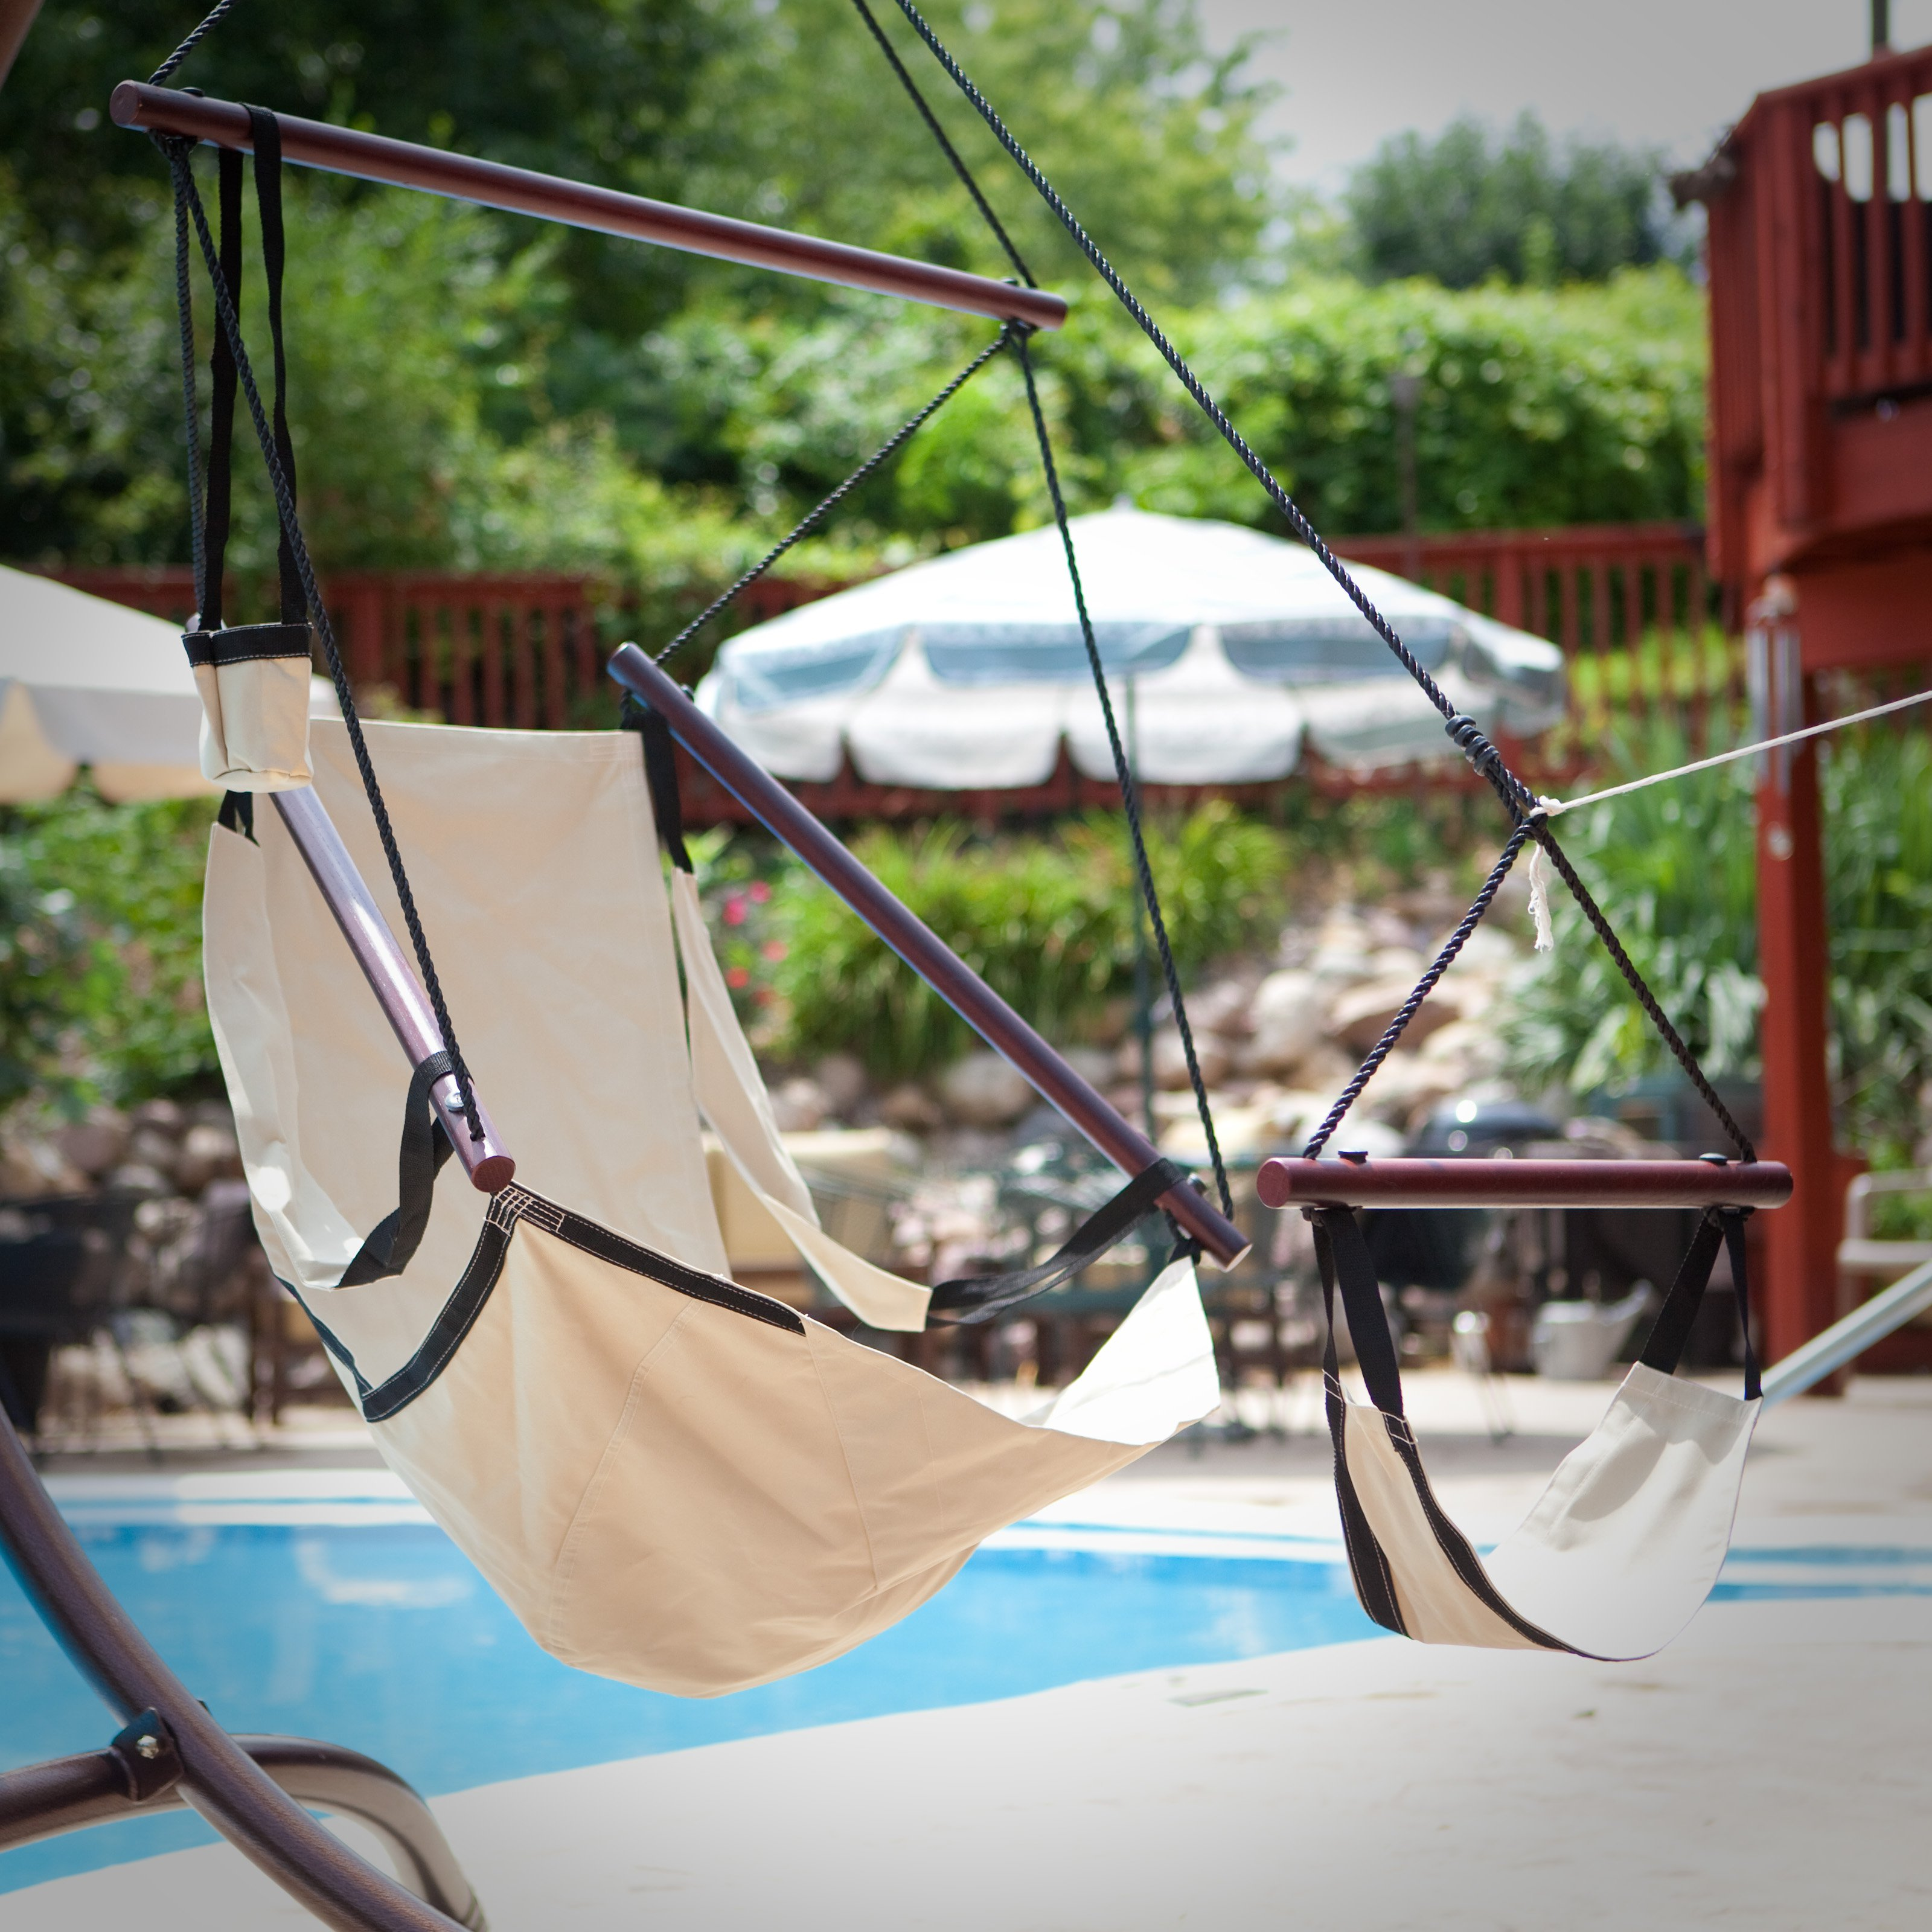 The Ultimate Hanging Chair - Burgundy